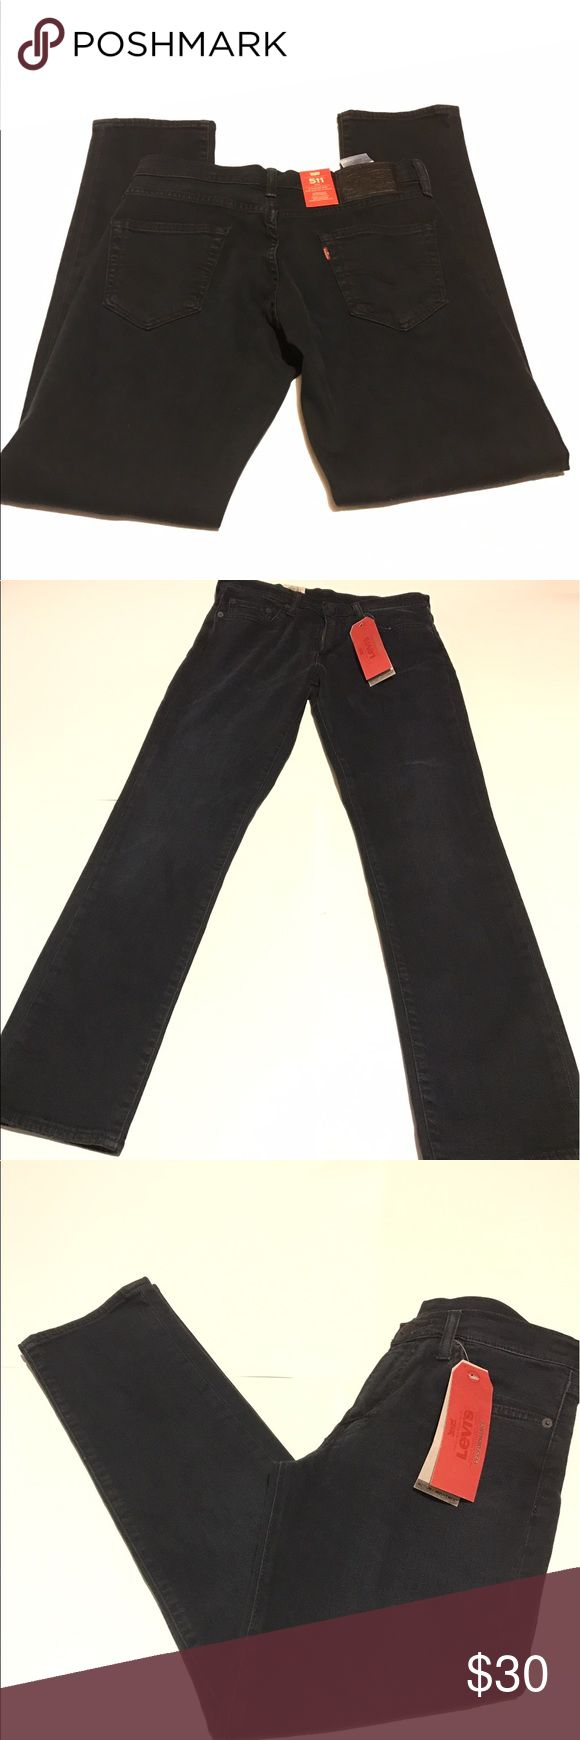 Levi's 511 slim jeans dark wash 30x39 men Brand new with tags, they sit below the waist and slim fit. Levi's Jeans Slim